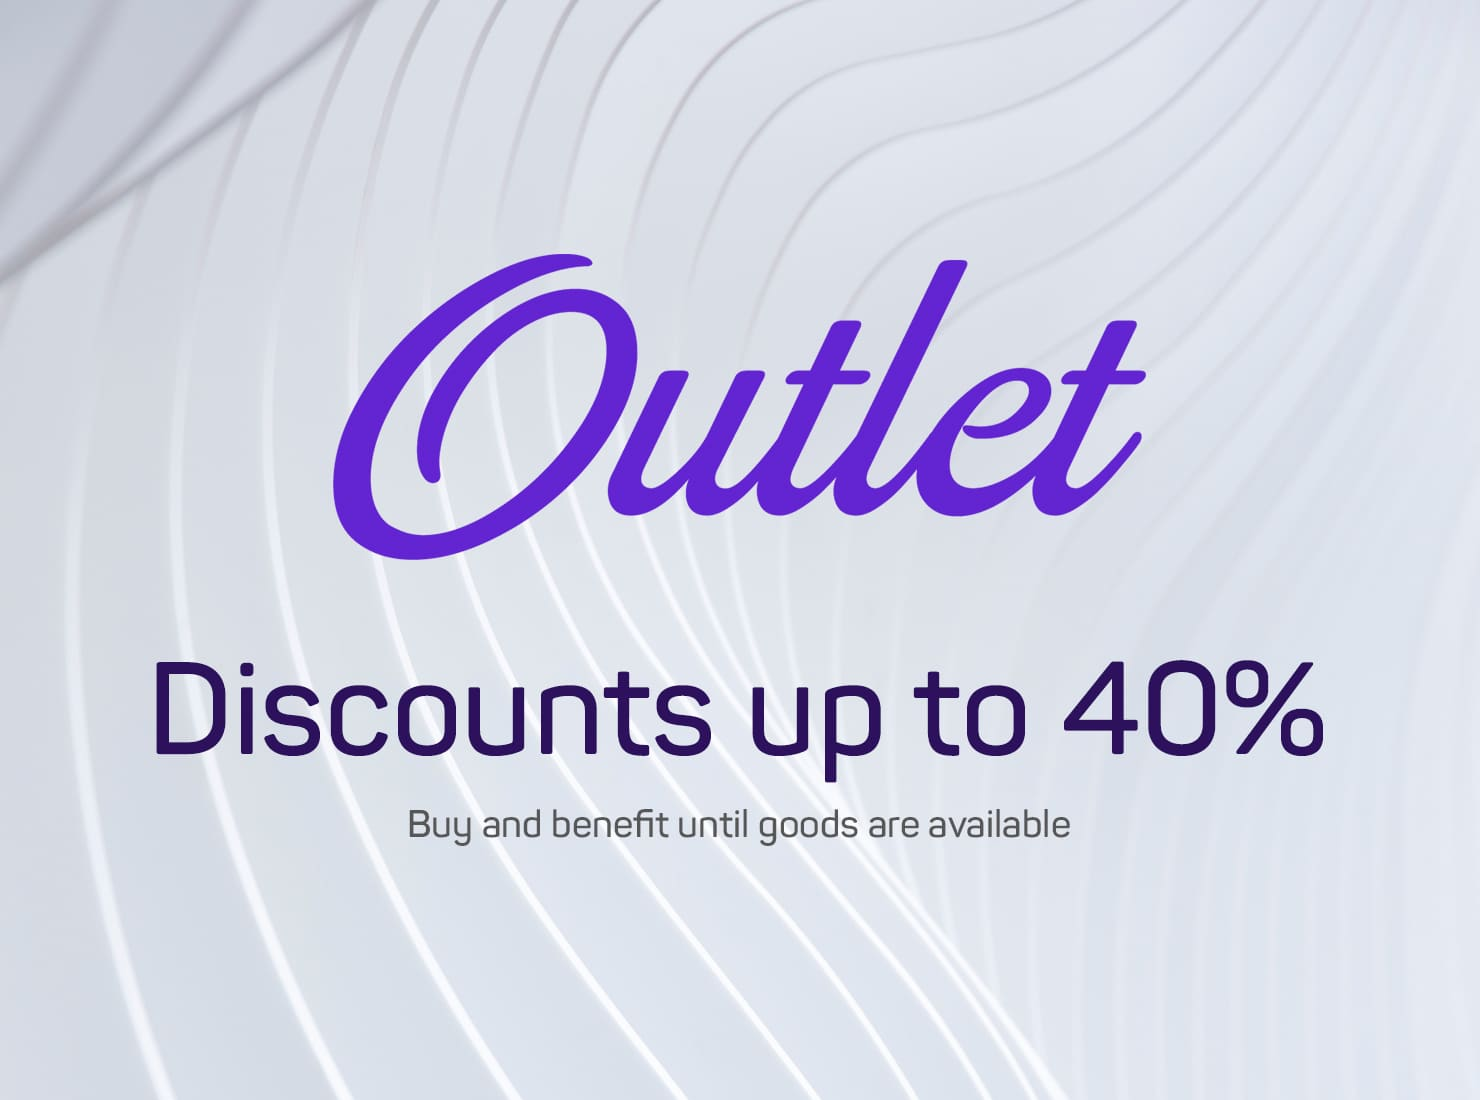 Discounts up to 40%